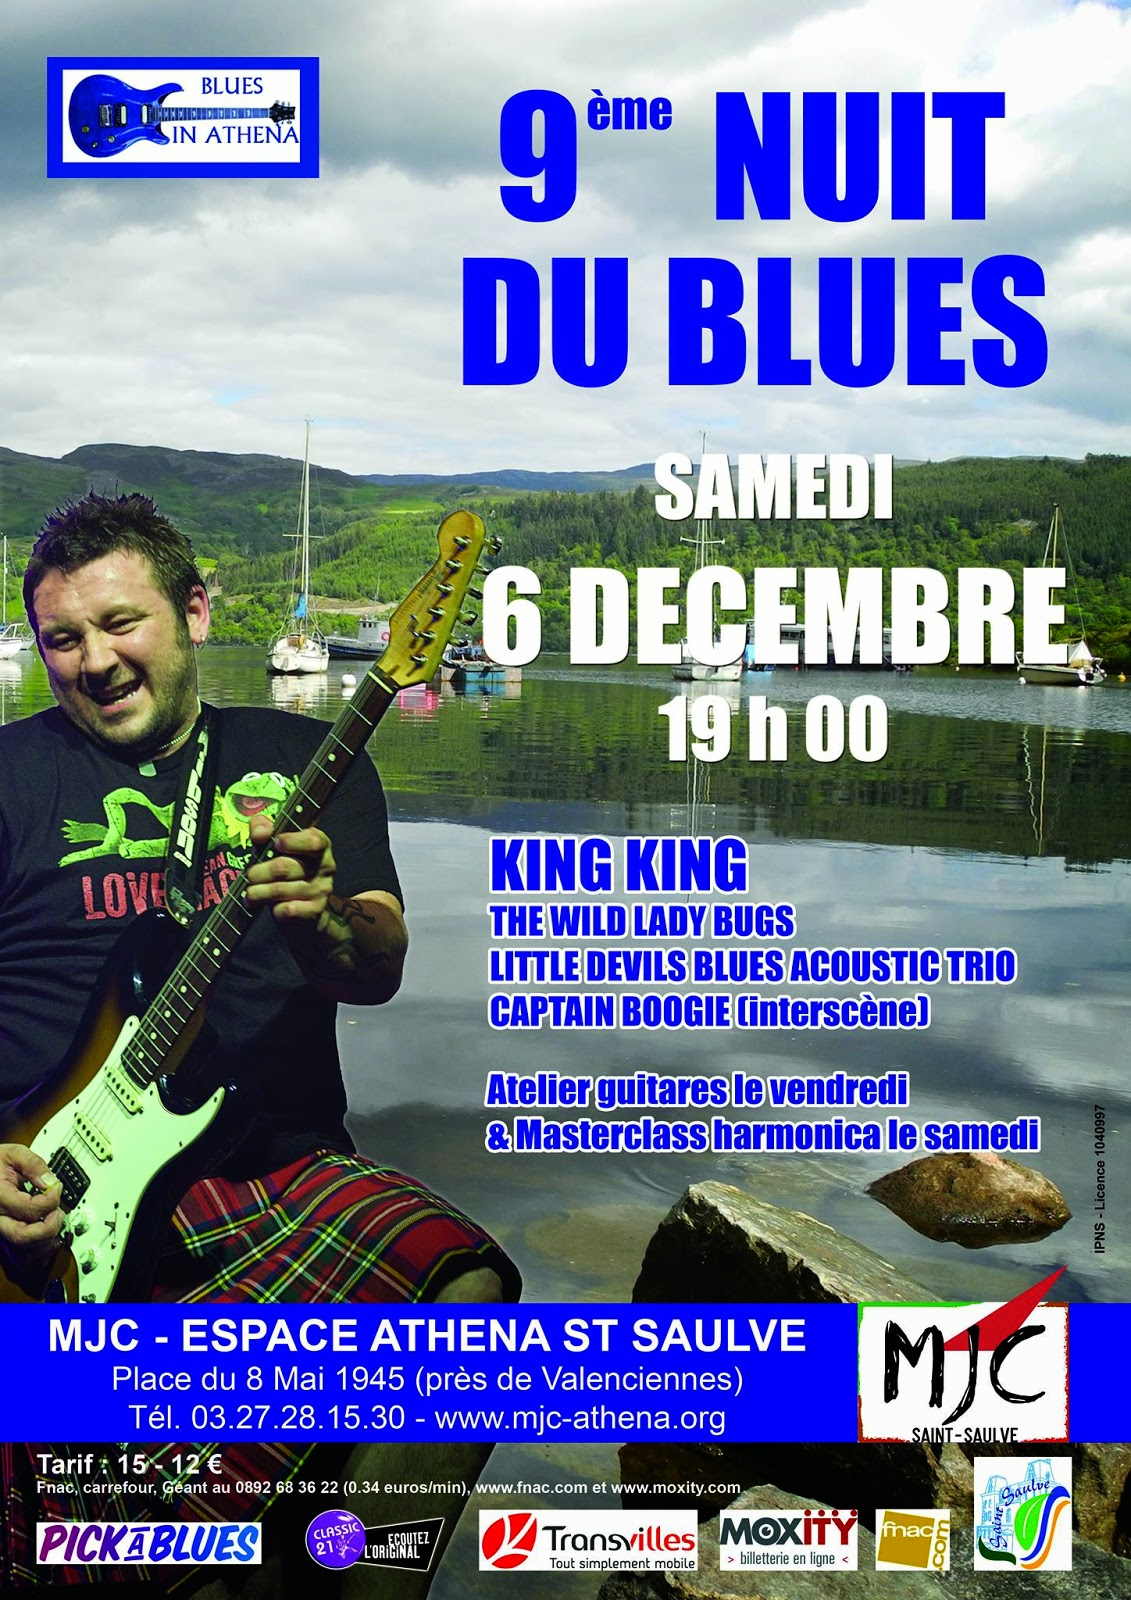 http://bluesinathena.blogspot.fr/p/nuit-du-blues.html